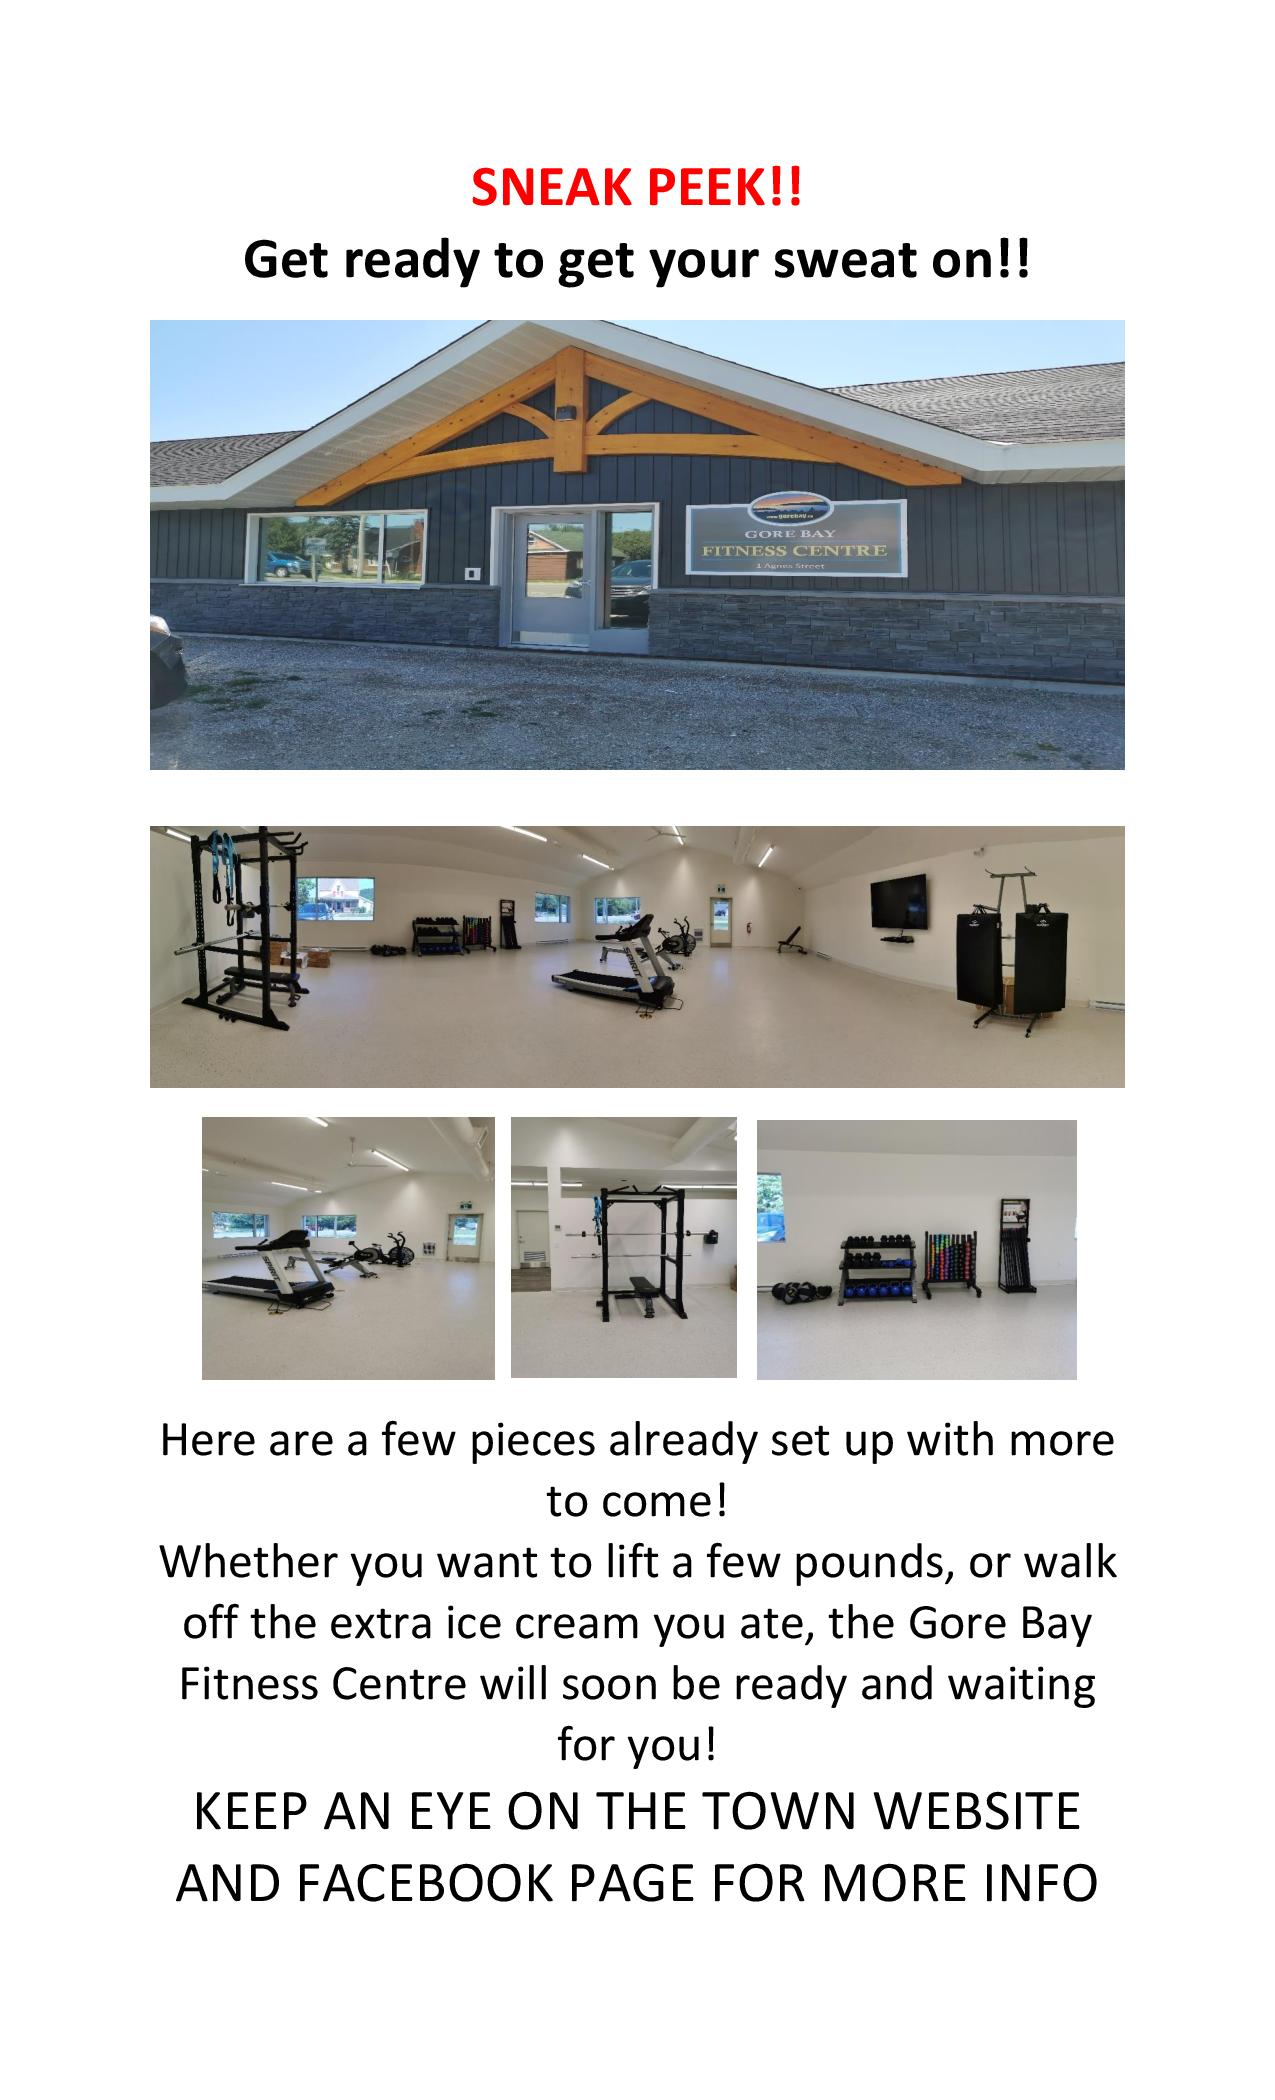 GORE BAY FITNESS CENTRE – SNEAK PEEK!!